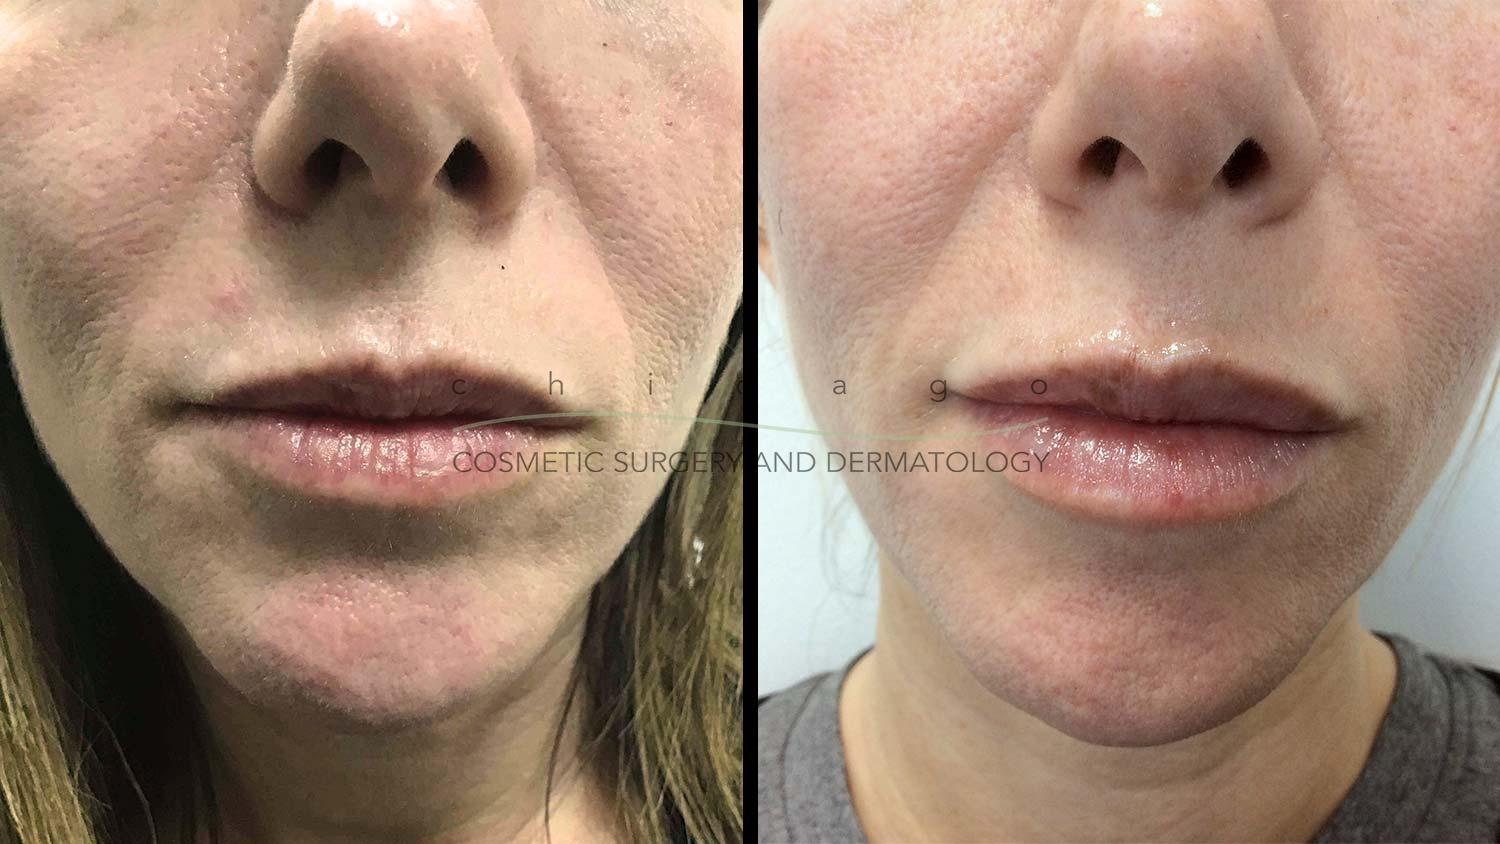 Juvederm Vollure lip filler before and after